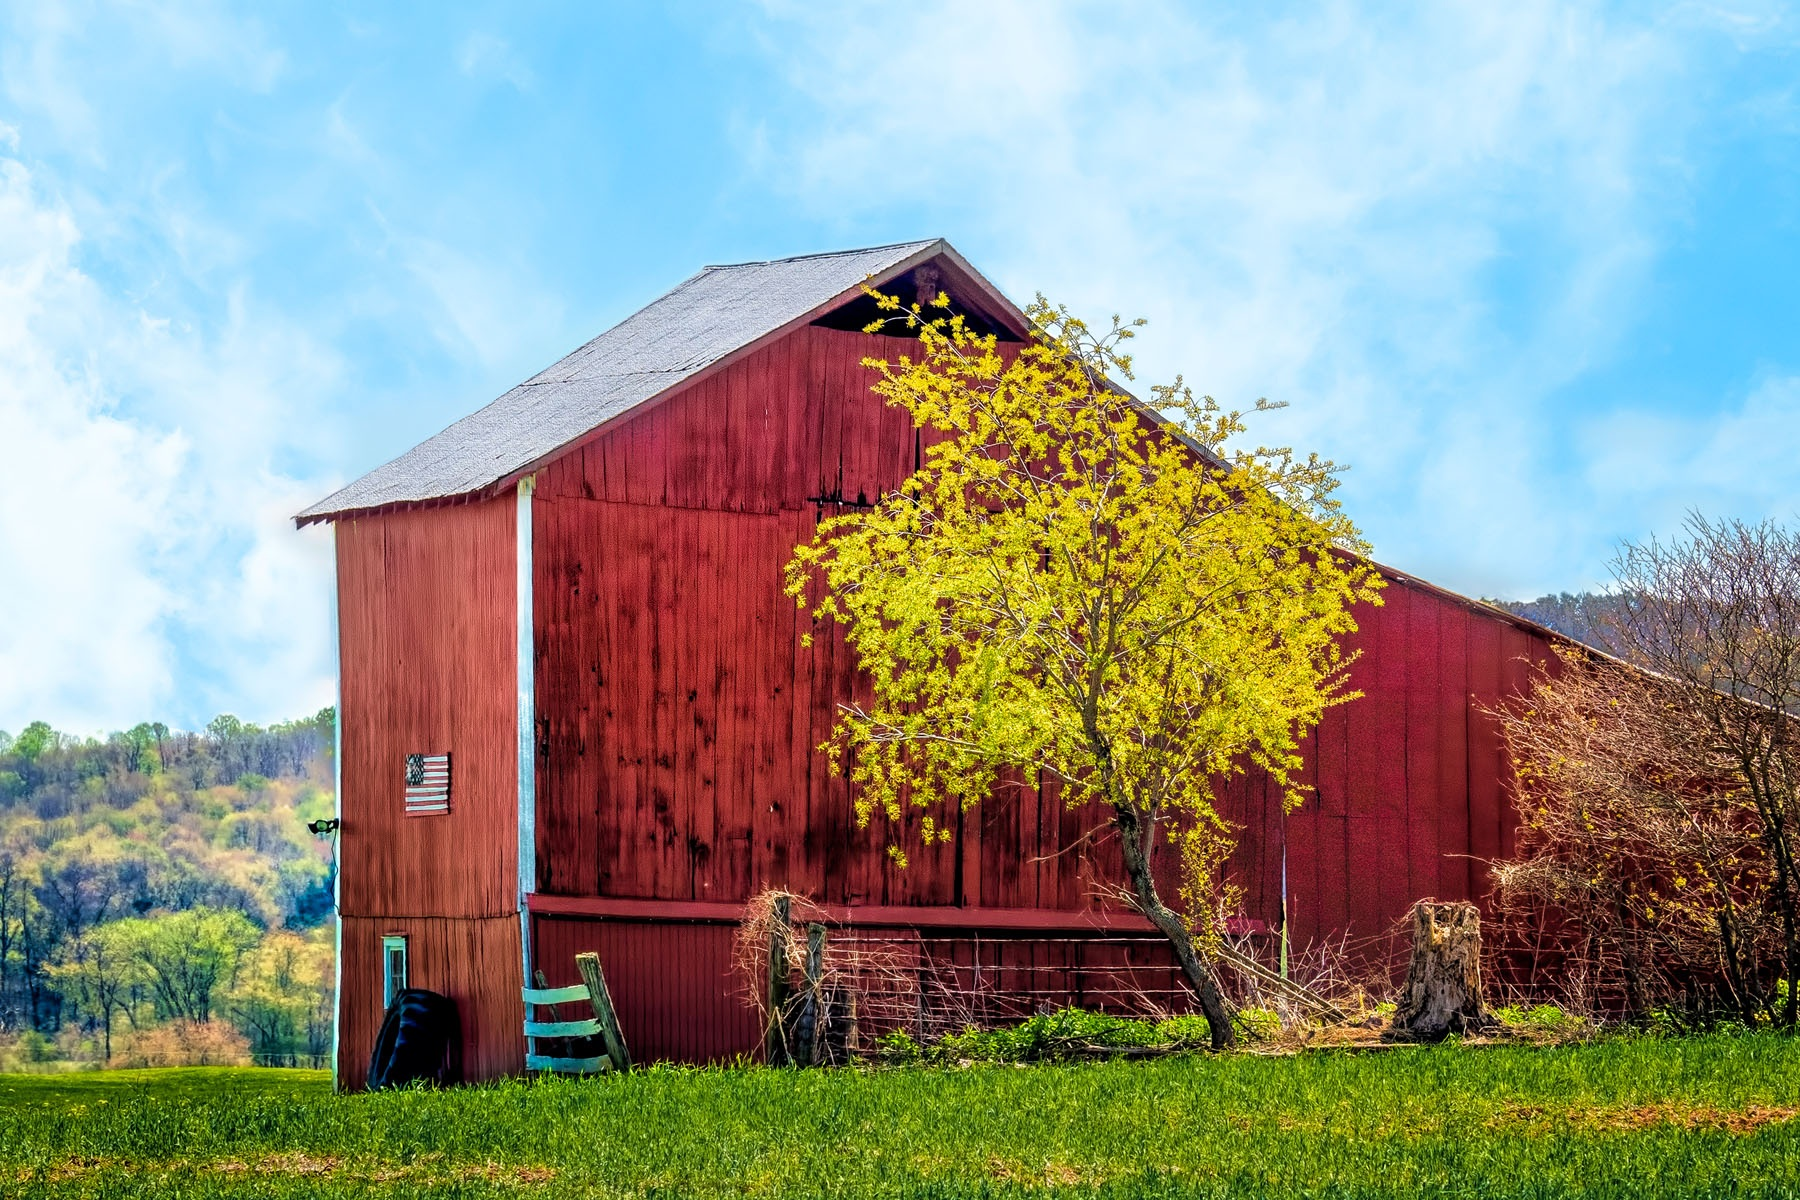 AMISH BARN - I noticed this barn while driving through the Amish country in central Ohio. What caught my eye was the contrast of the bright sun lit tree against the red of the barn siding. The flag was a bonus.